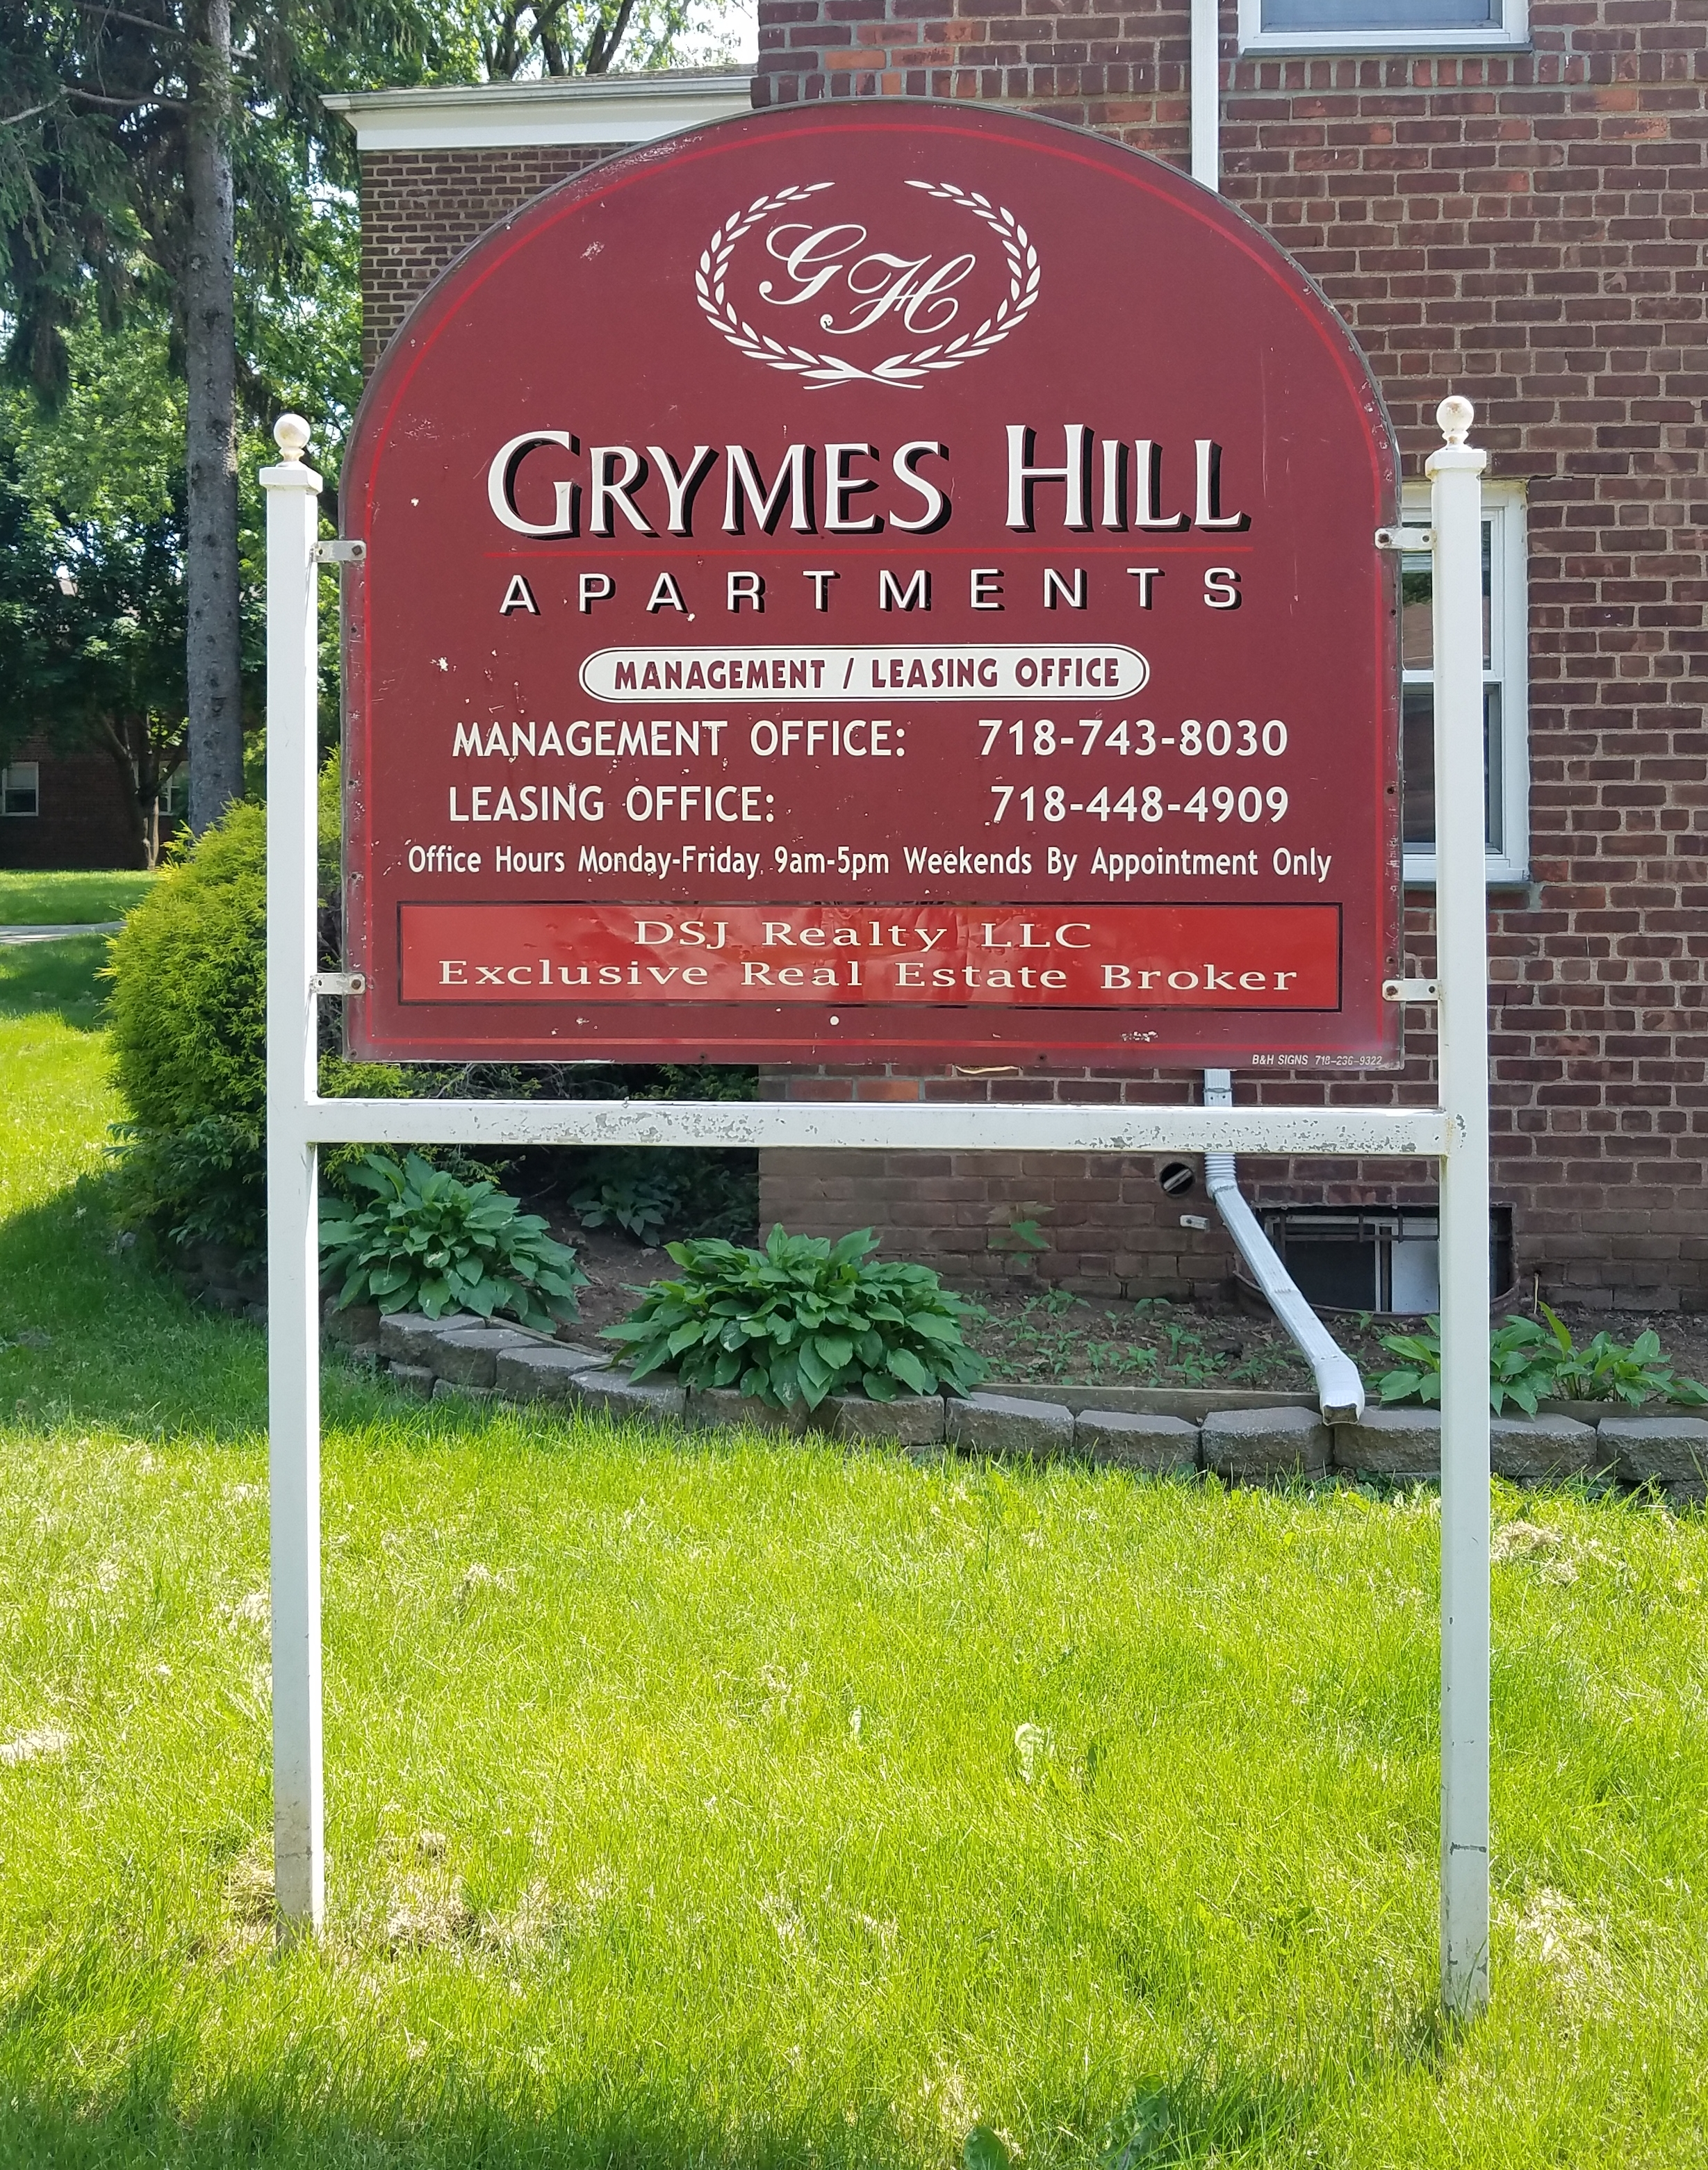 Grymes Hill